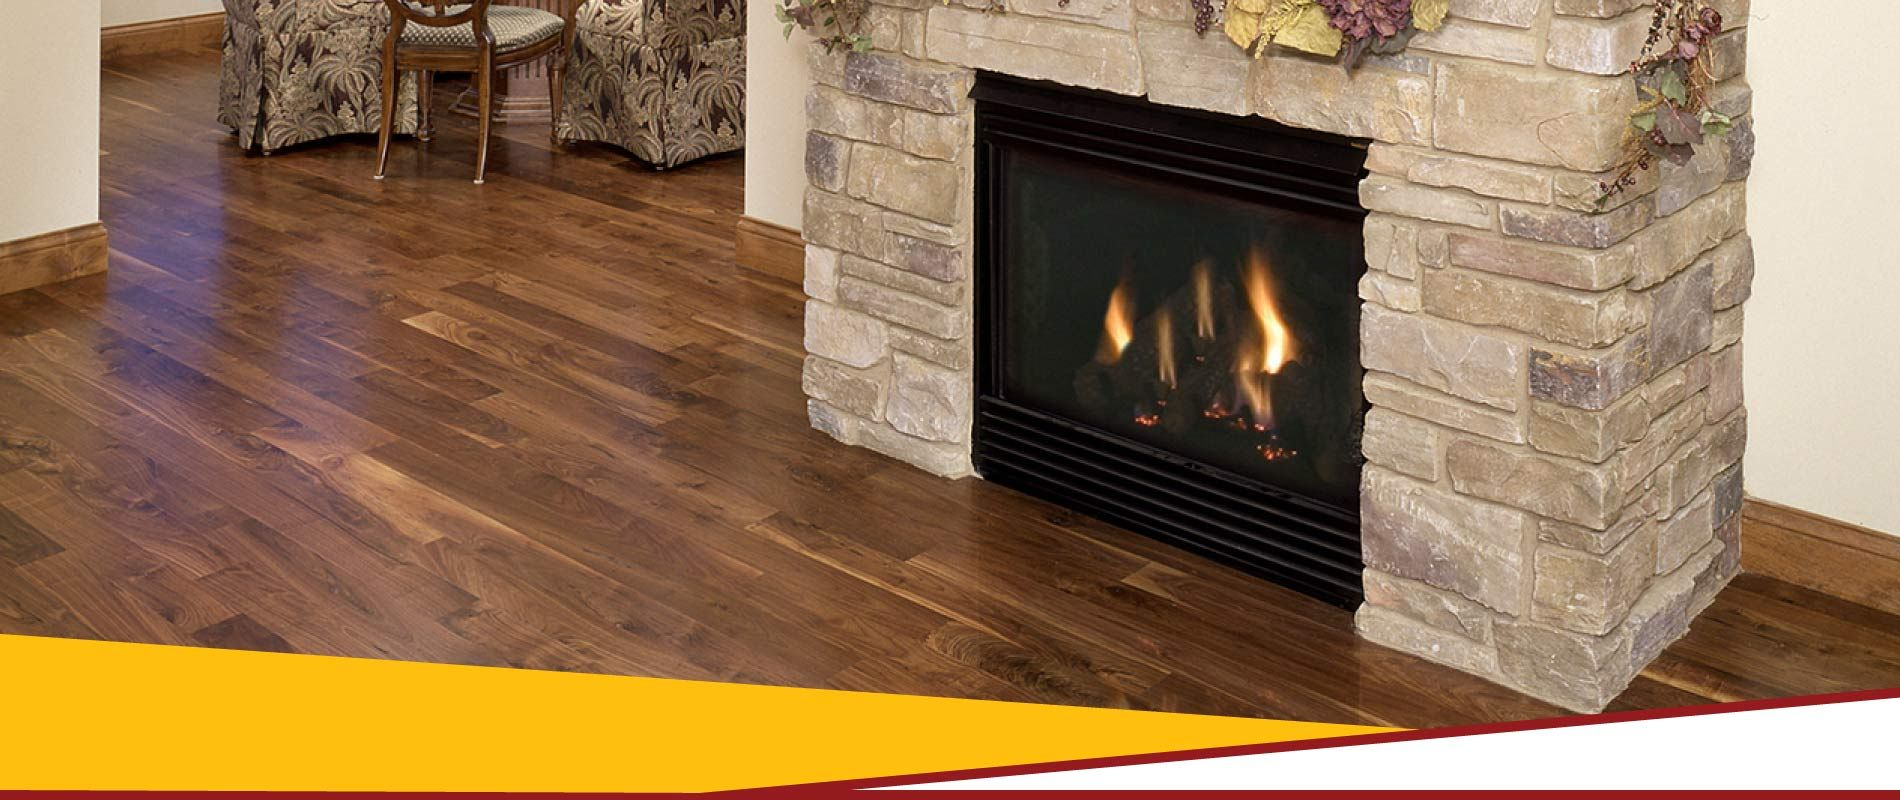 Hardwood floor with fireplace